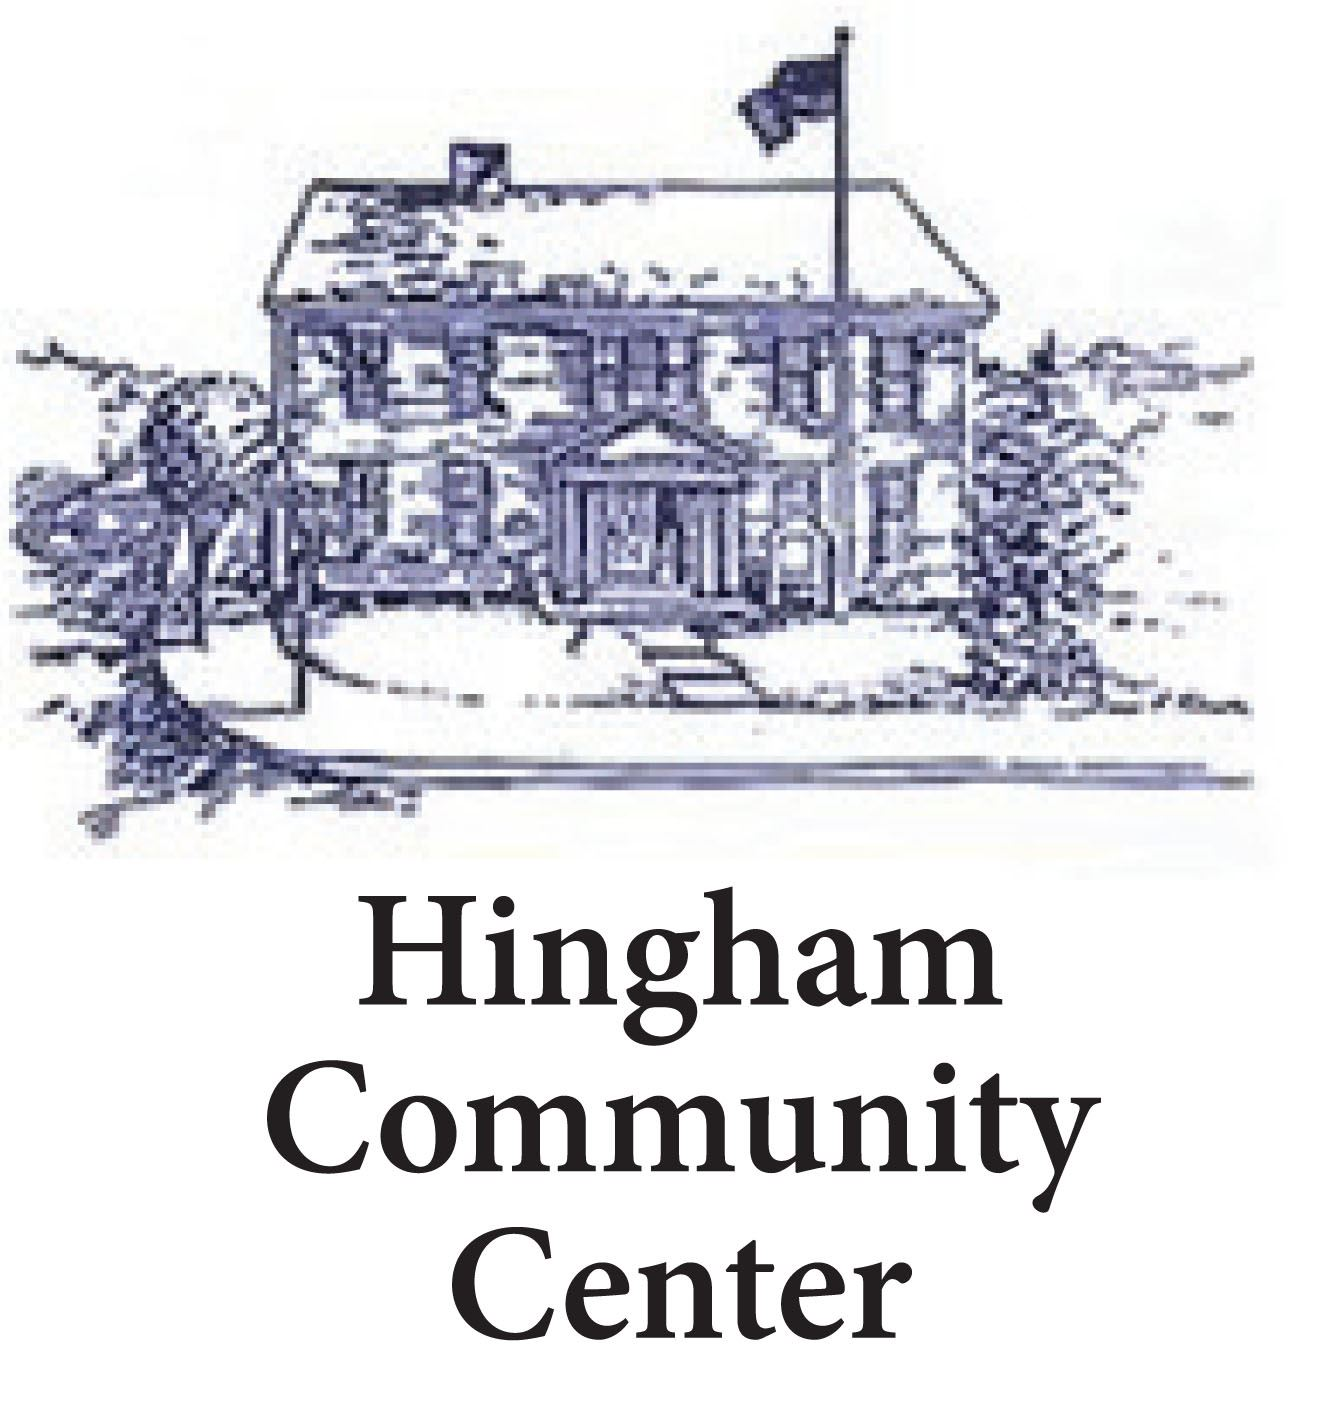 Hingham Community Center